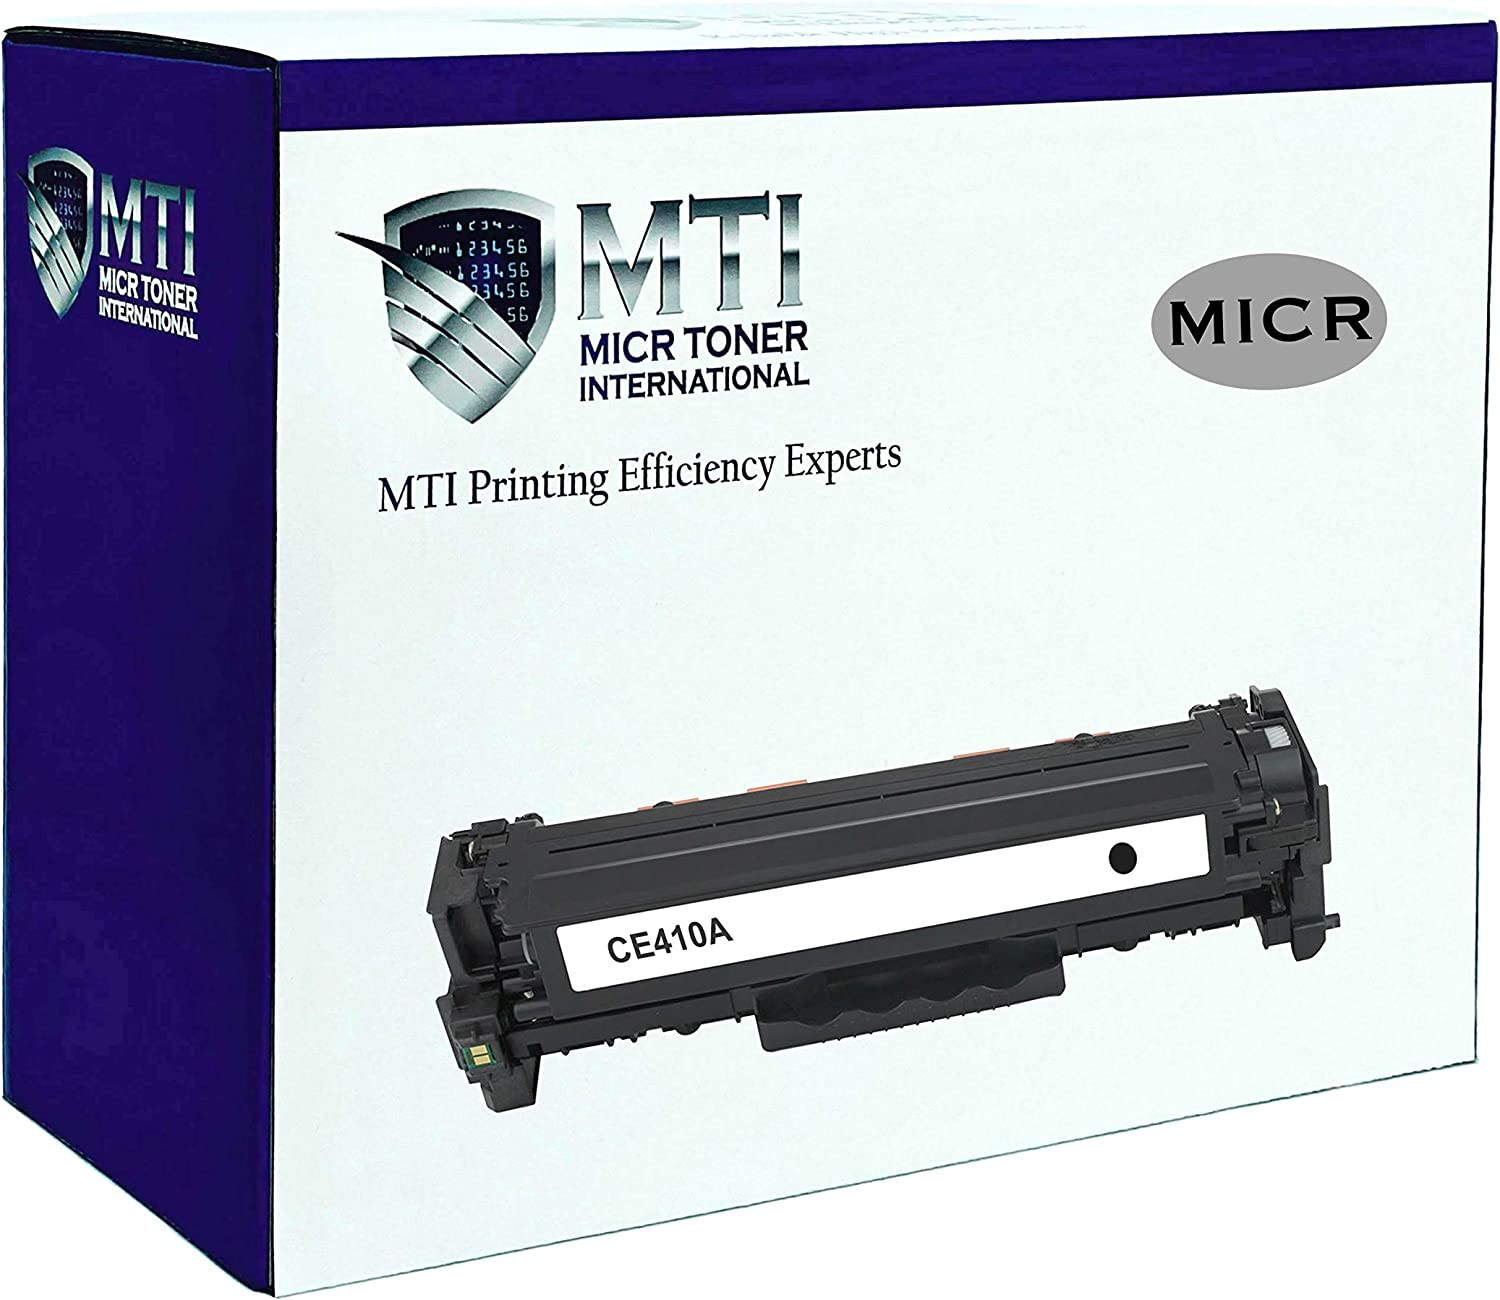 MICR Toner International Compatible Magnetic Ink Cartridge Replacement for HP CE410A 305A LaserJet M351 M375NW M451DN M451DW M475DN M475DW